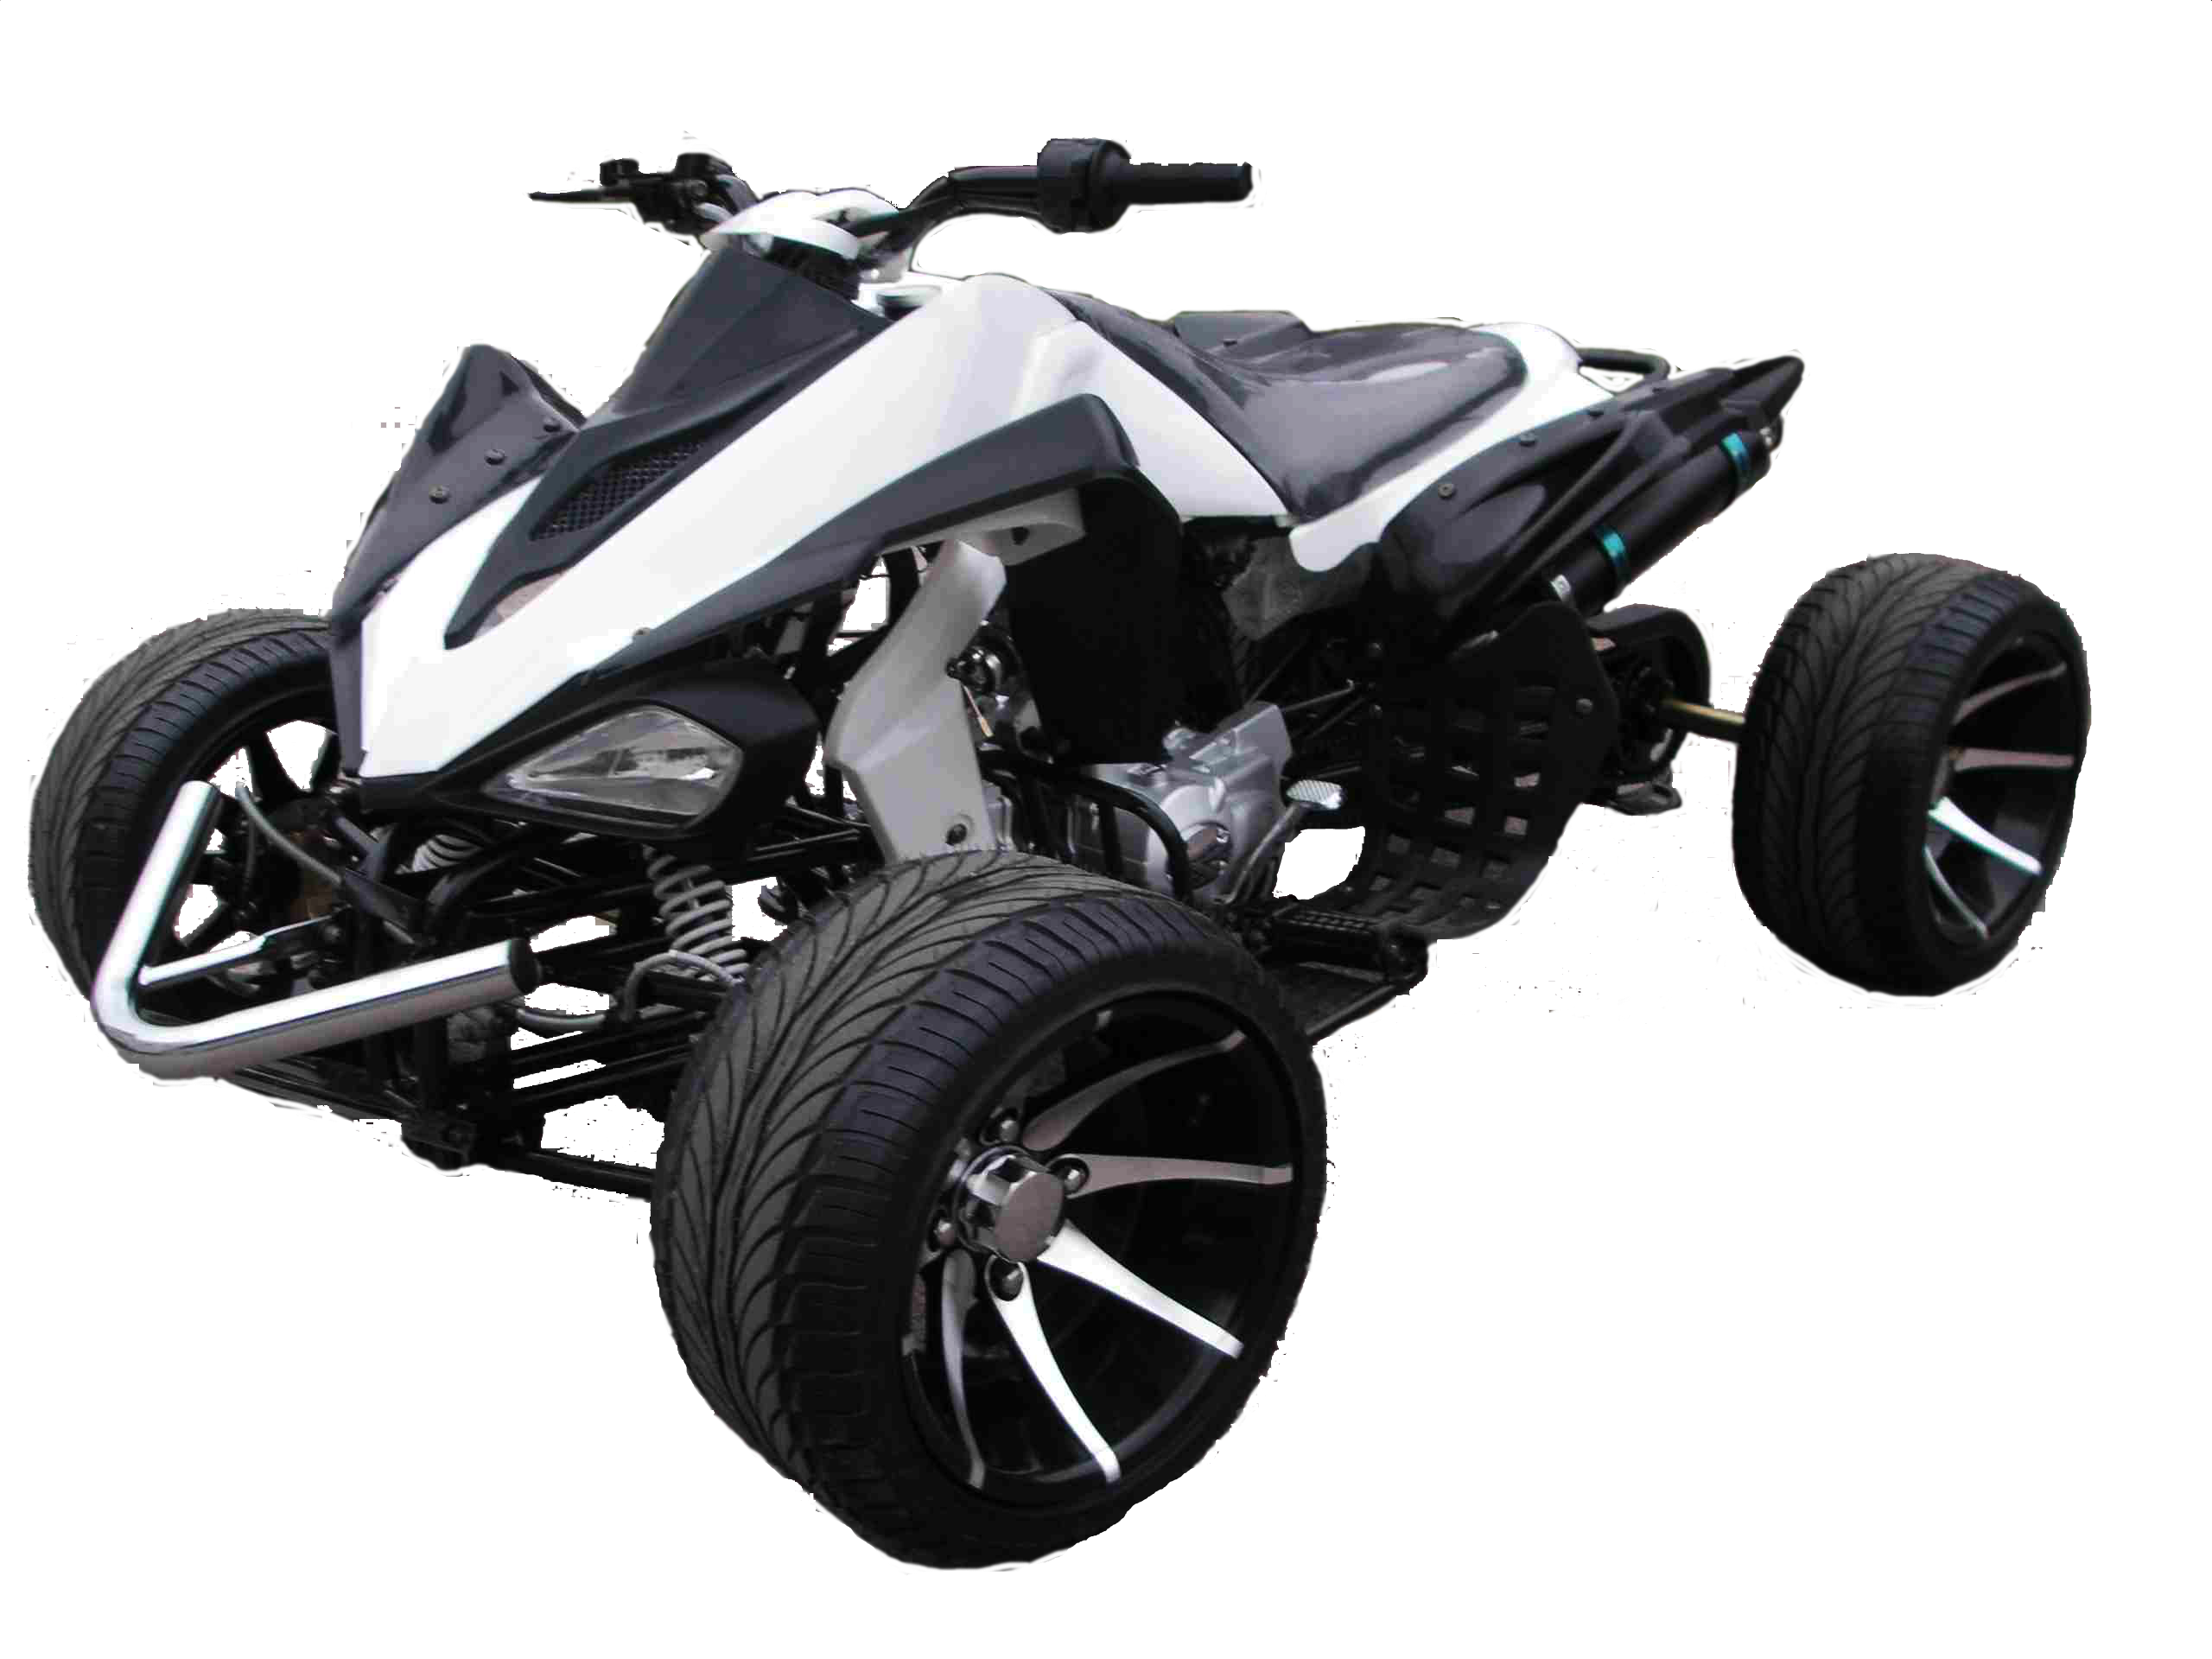 Cheap Atvs Used Atvs For Sale Yamaha Kawasaki Suzuki